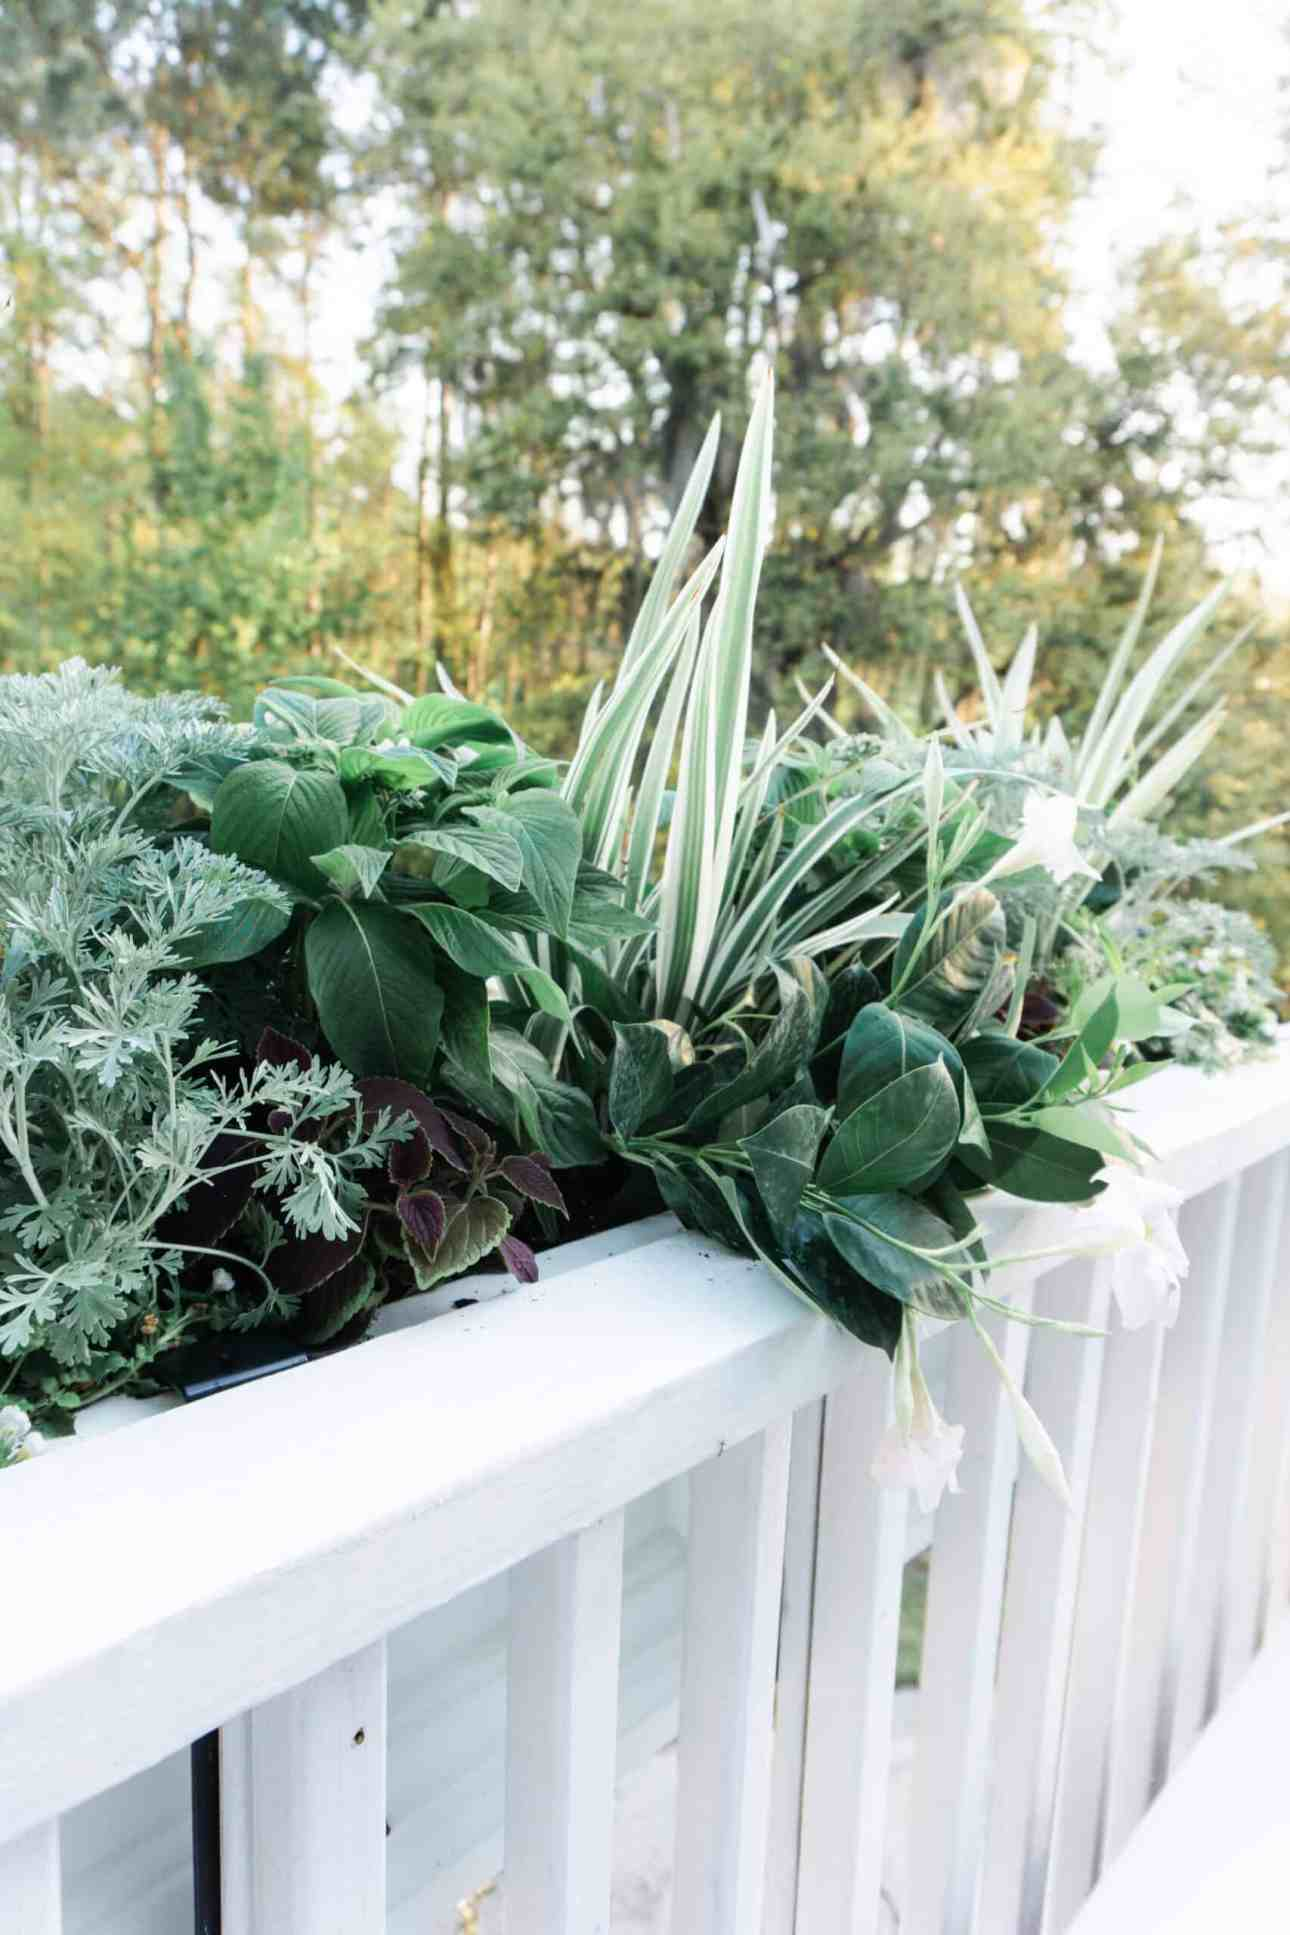 Variety of full sun loving plants in window boxes.